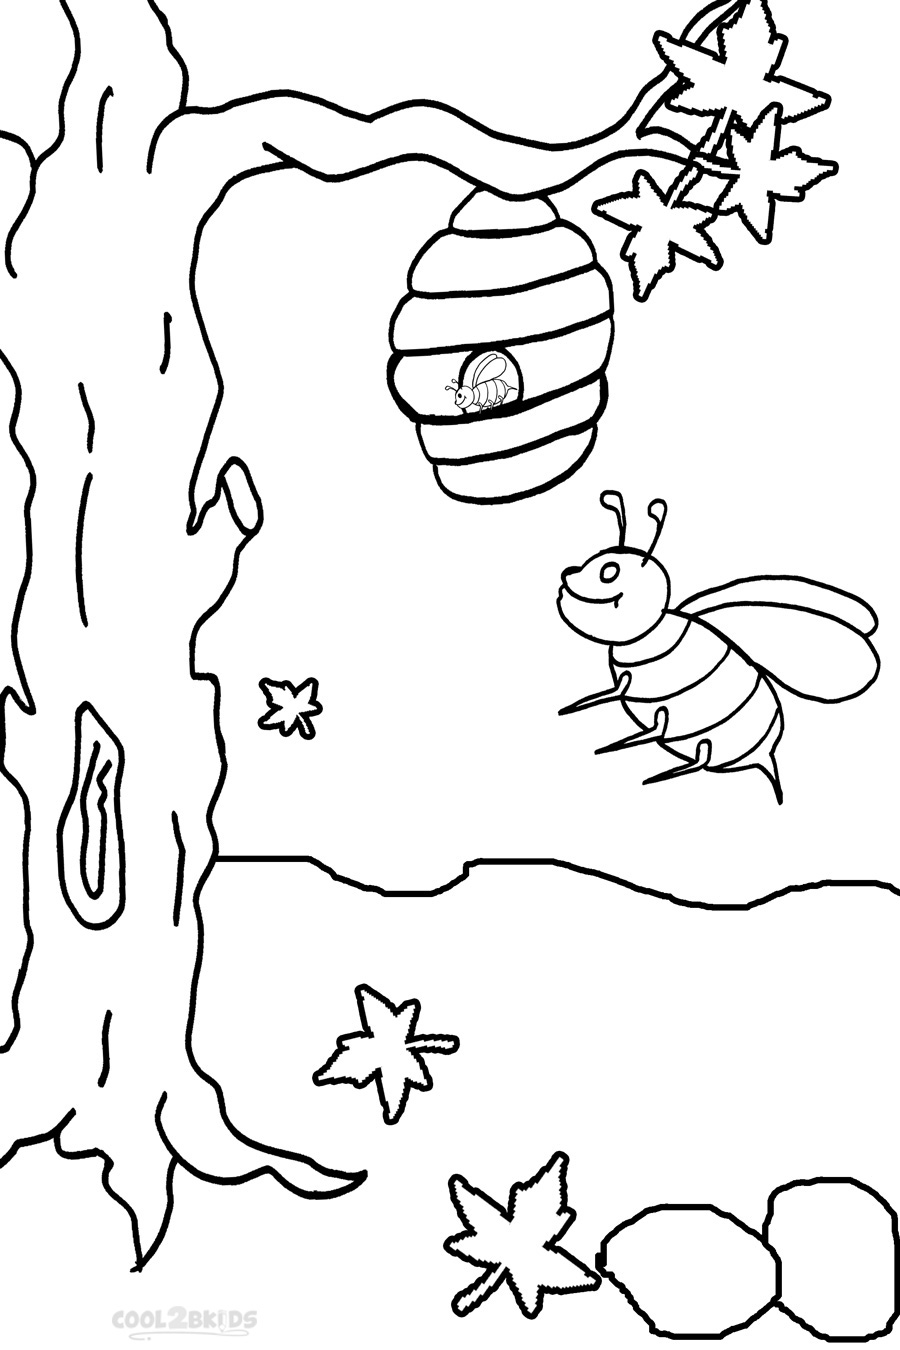 bees colouring pages printable bumble bee coloring pages for kids colouring bees pages